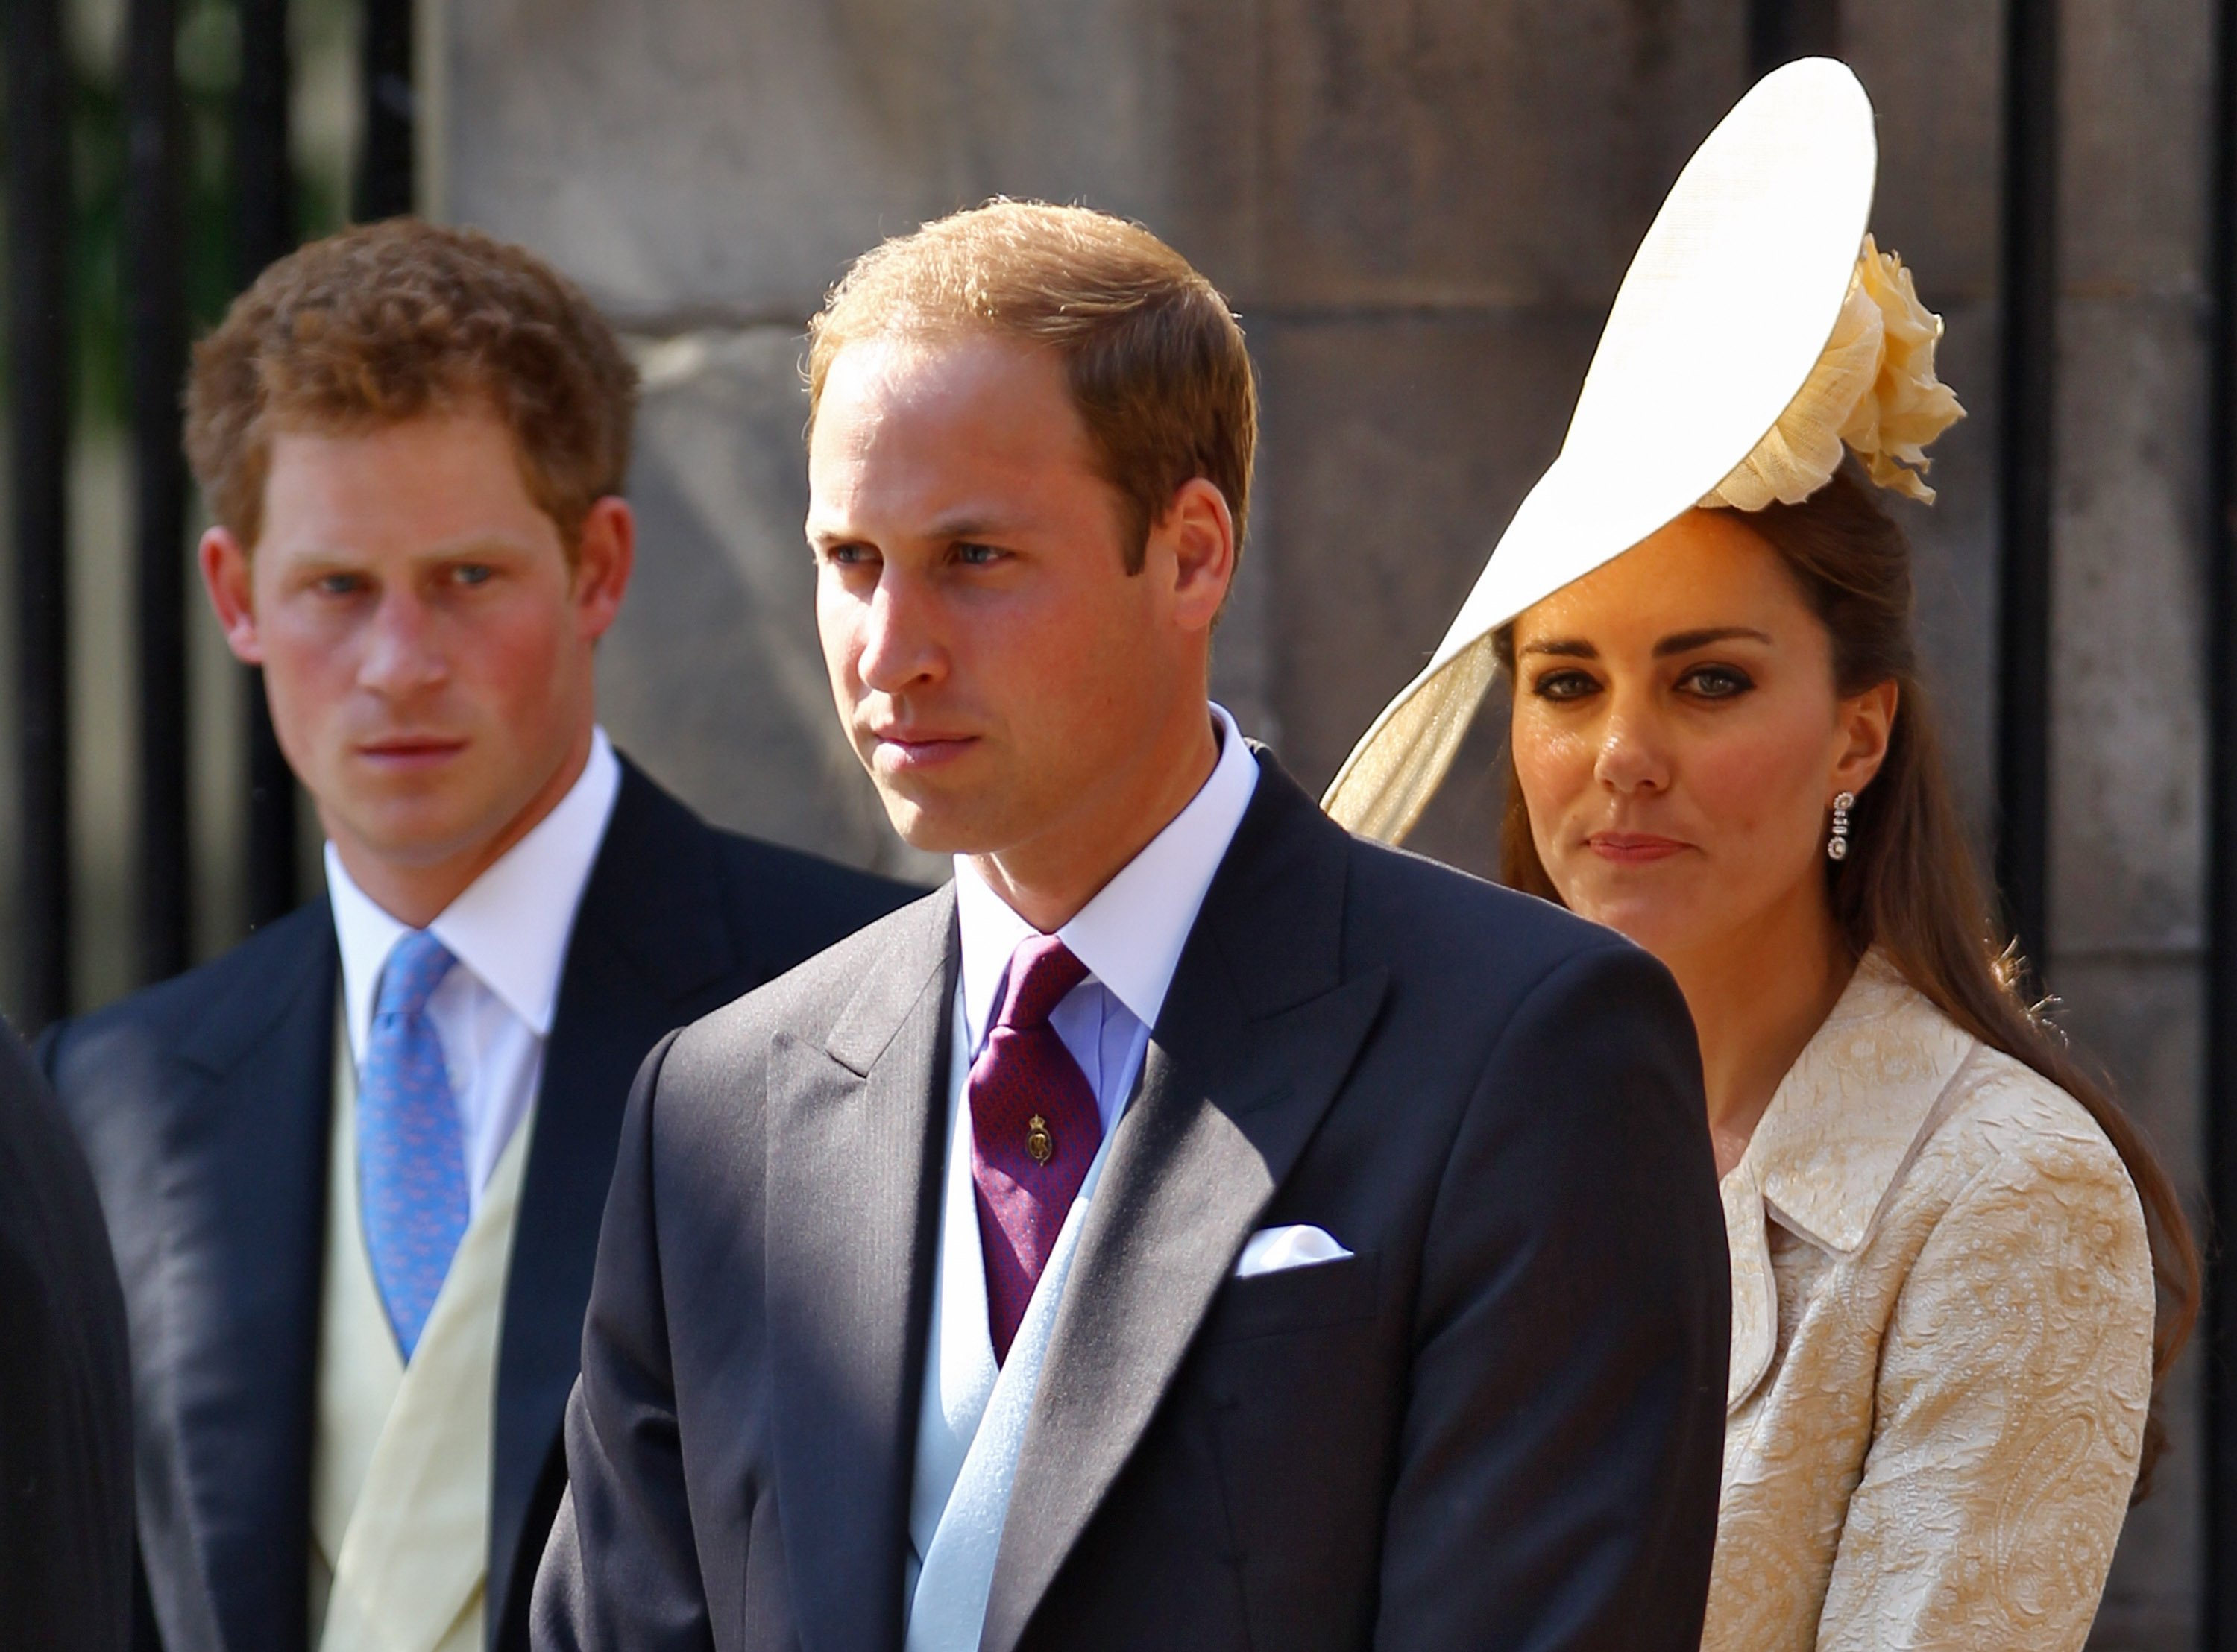 Prince Harry, Prince William, and Kate Middleton | Photo: Getty Images